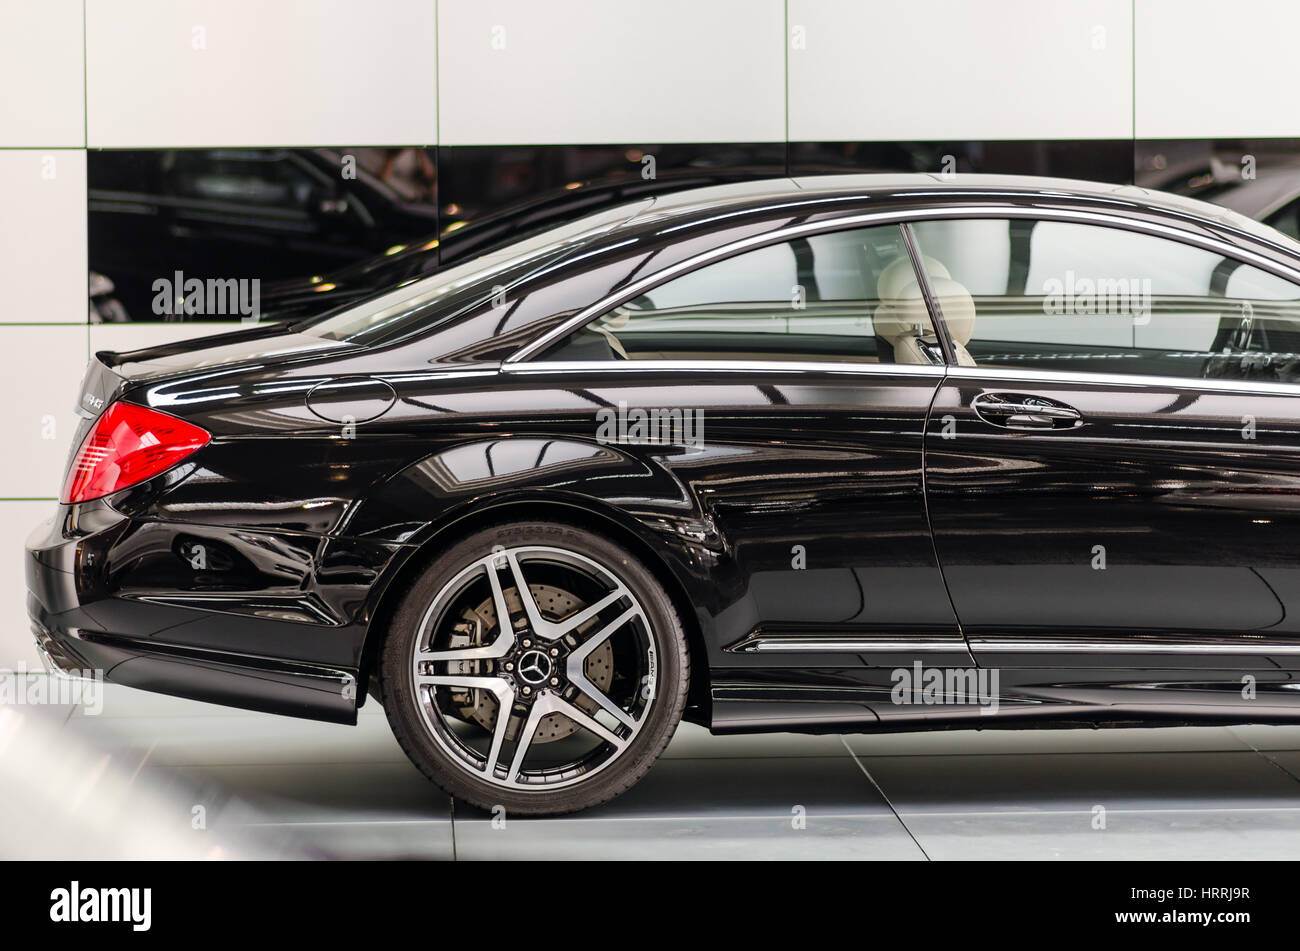 Kyiv, Ukraine - April 21th, 2014: Showroom. Mid-size luxury car Mercedes-Benz CL 63 AMG Coupe Stock Photo